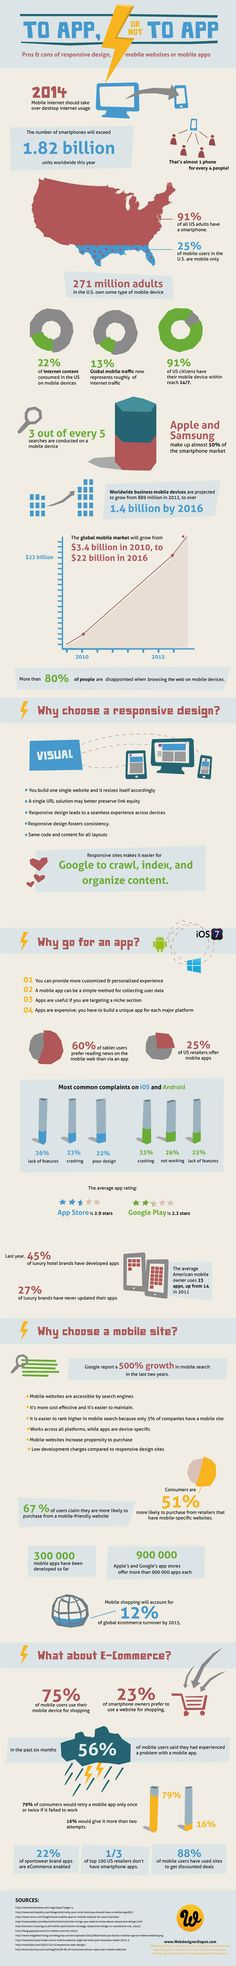 Infographic: To app, or not to app